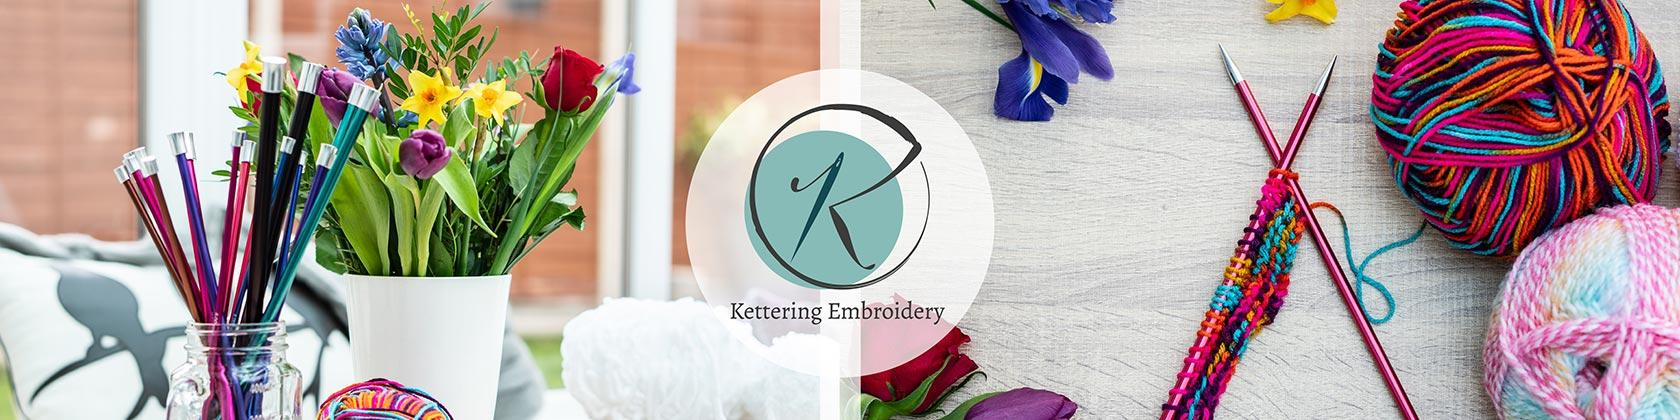 Kettering Embroidery